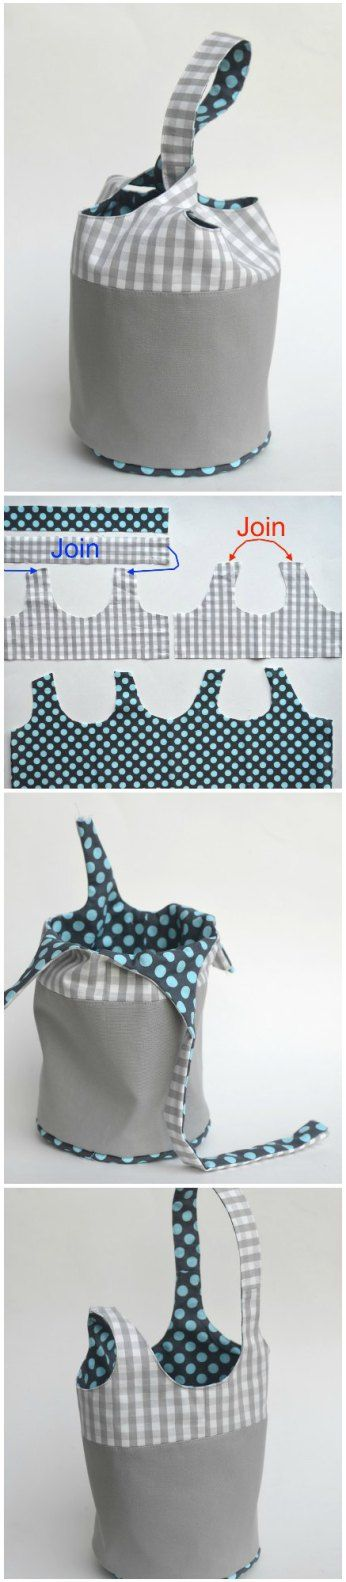 Free sewing pattern and full photo tutorial for this fully-reversible bucket tote bag. I'm making some in nursery fabrics as baby shower gifts - handy and they hang up too.